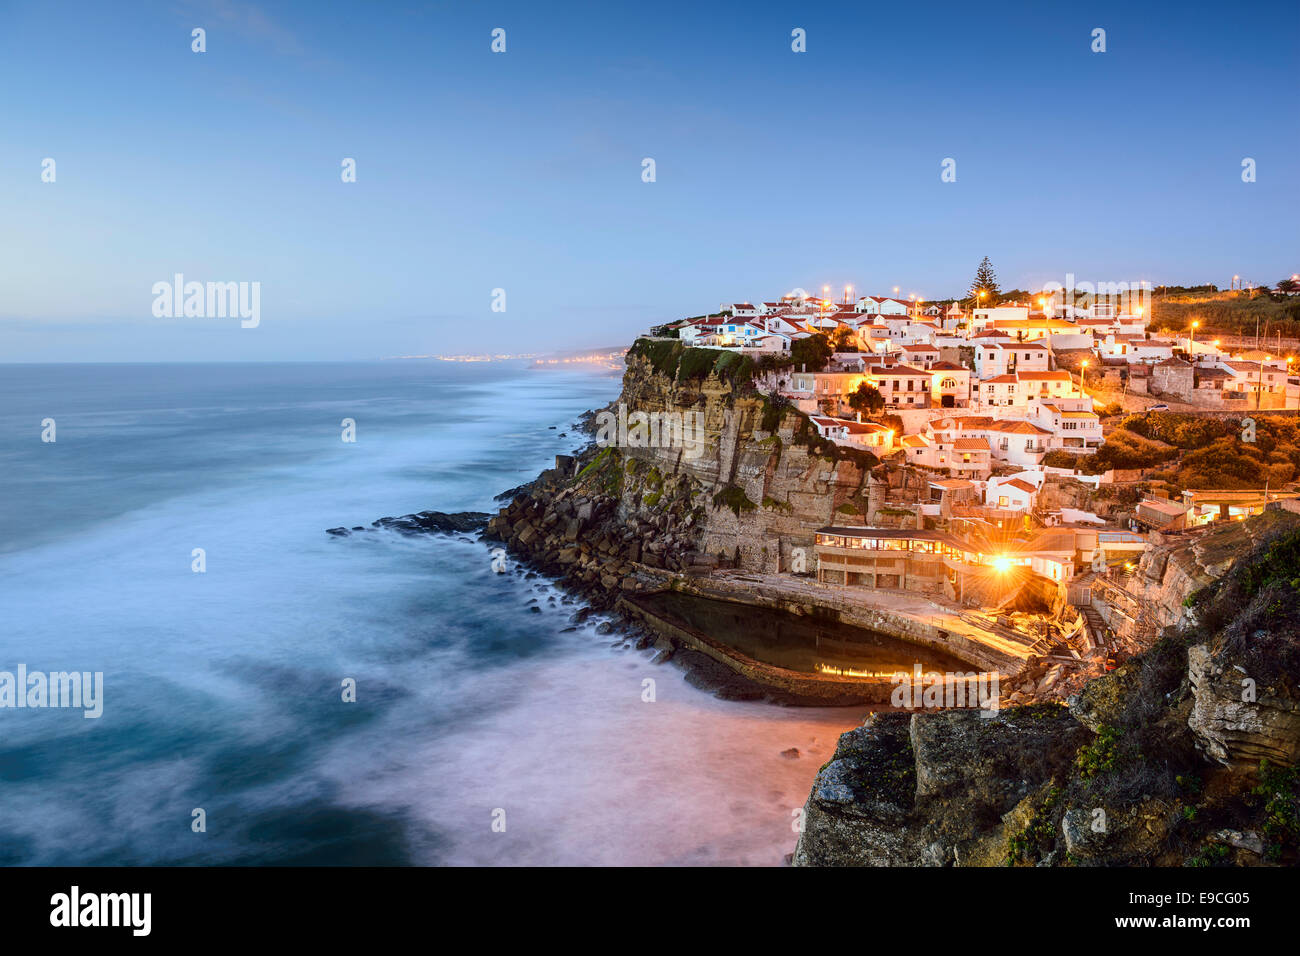 Azenhas Do Mar, Sintra, Portugal townscape on the coast. Stock Photo